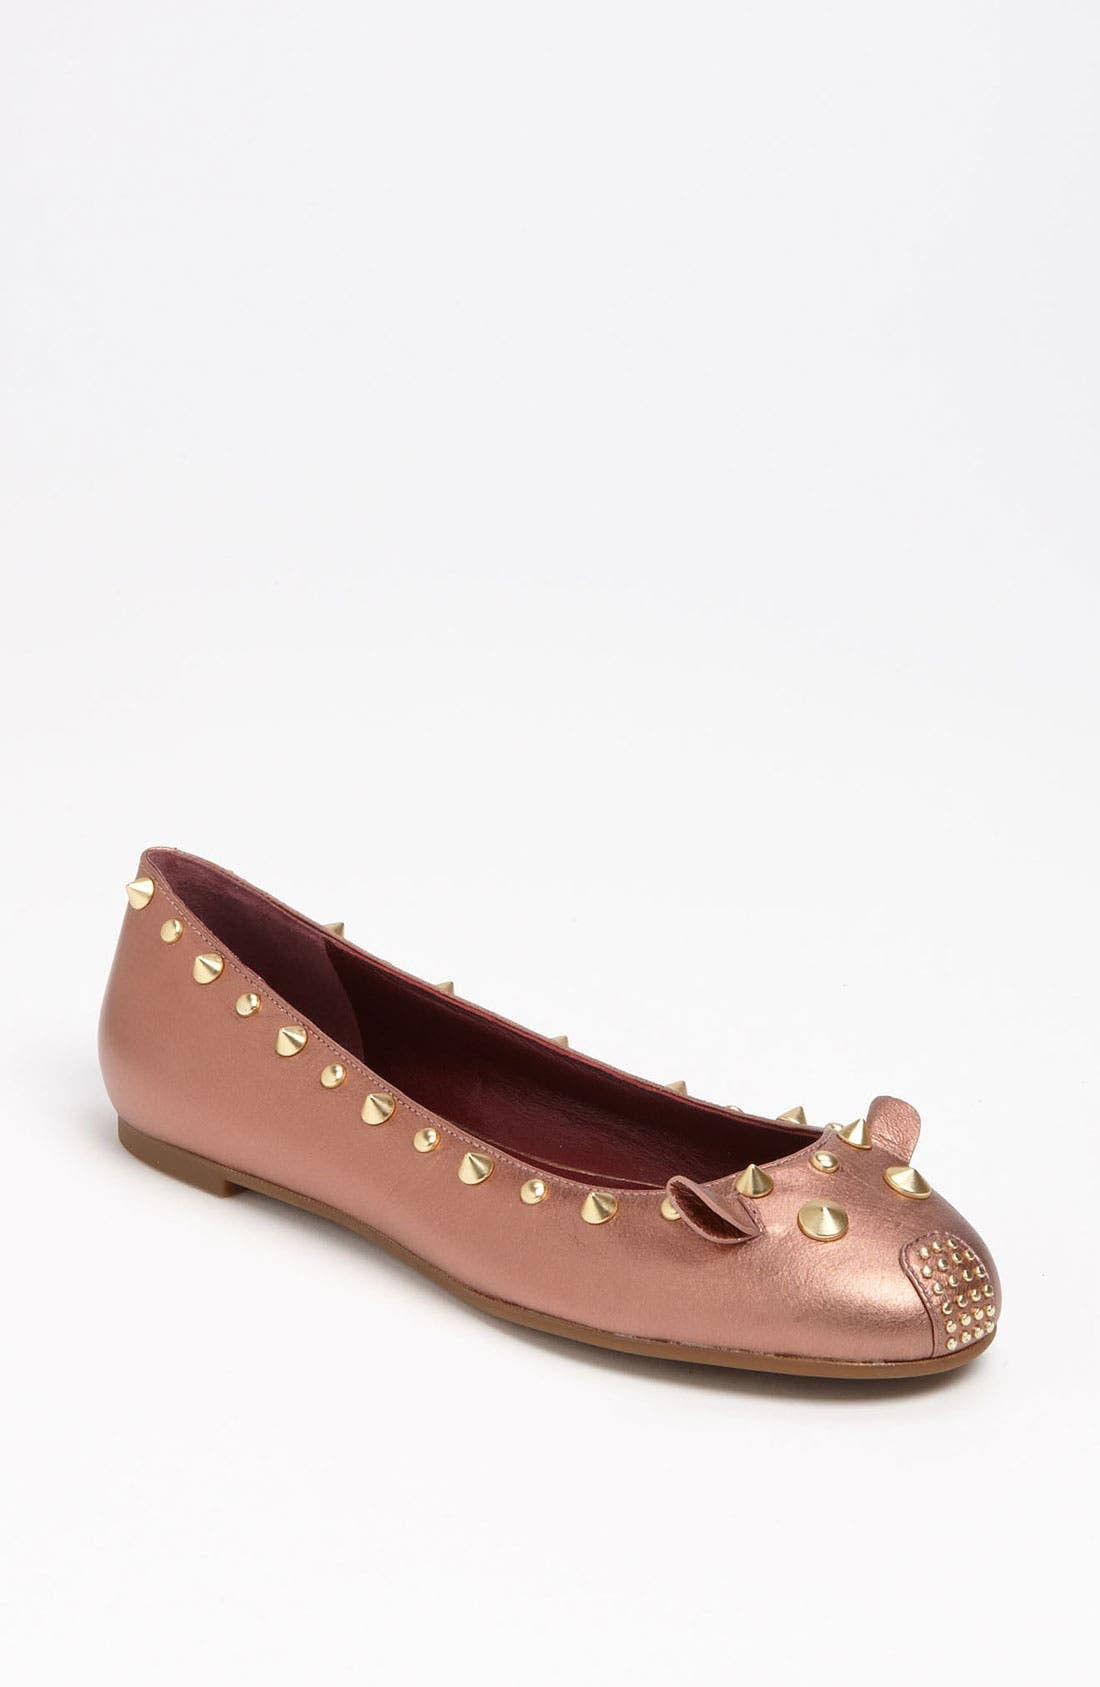 Main Image - MARC BY MARC JACOBS 'Studded Mouse' Flat